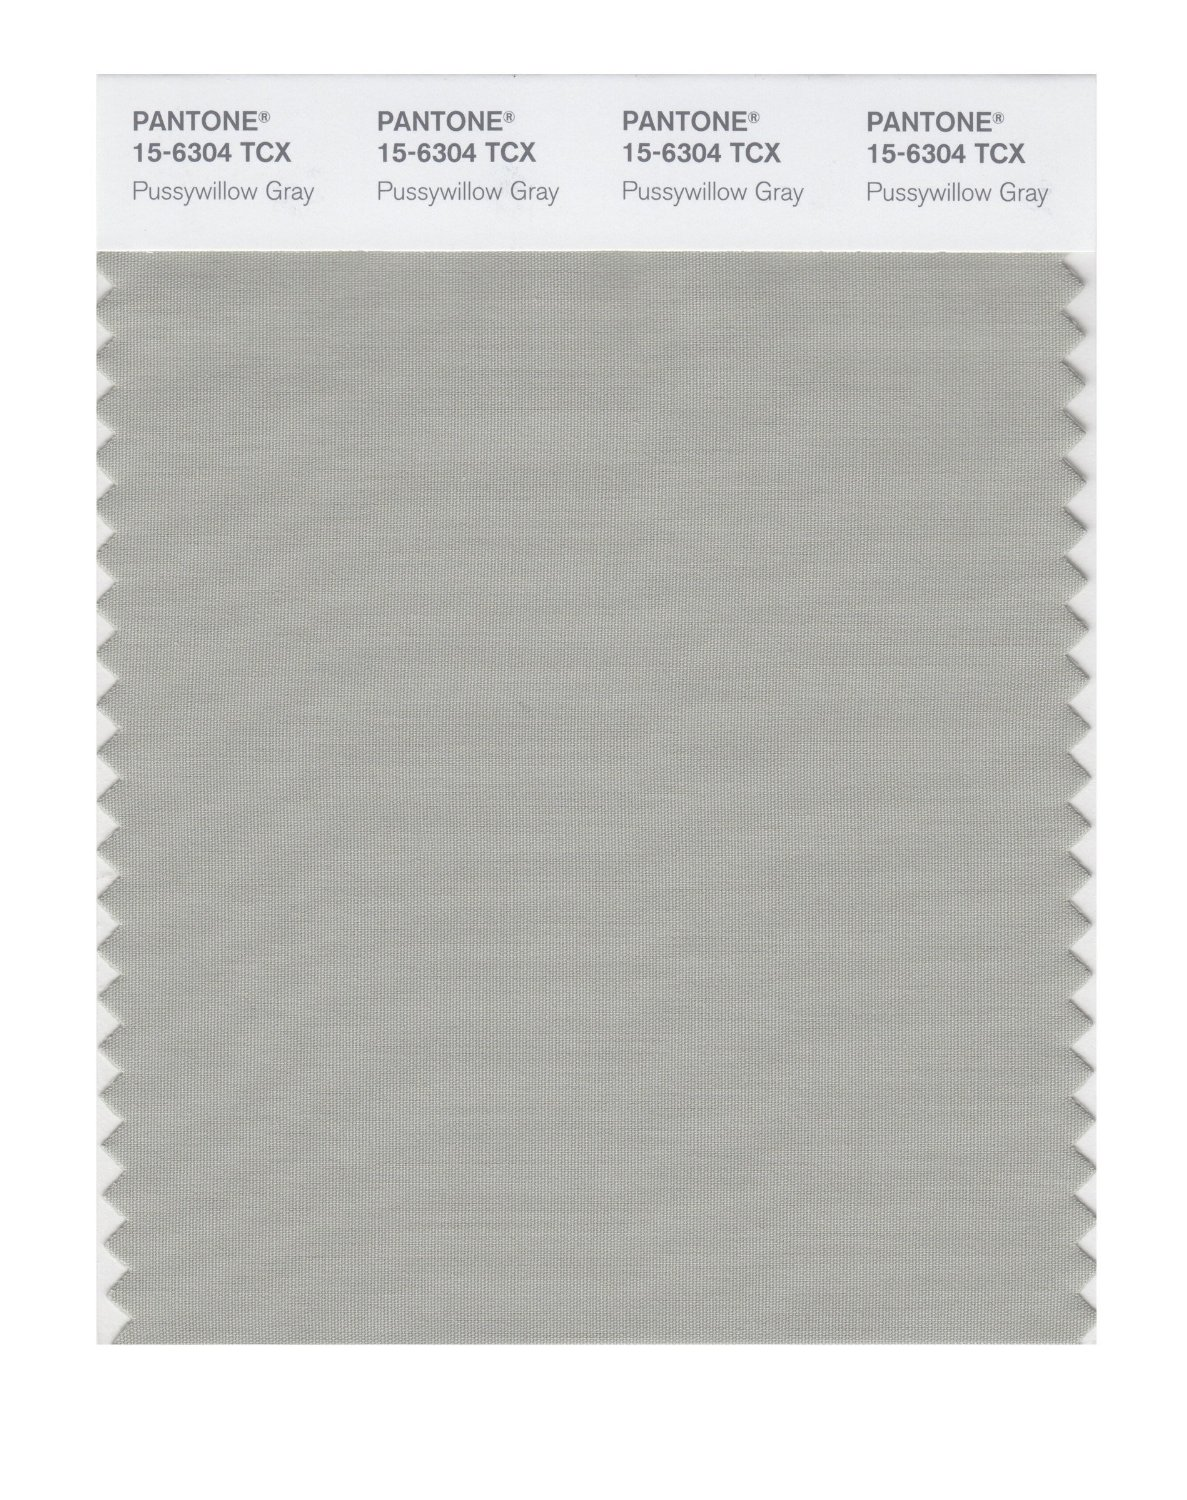 Pantone Smart Swatch 15-6304 Pussywillow Gray